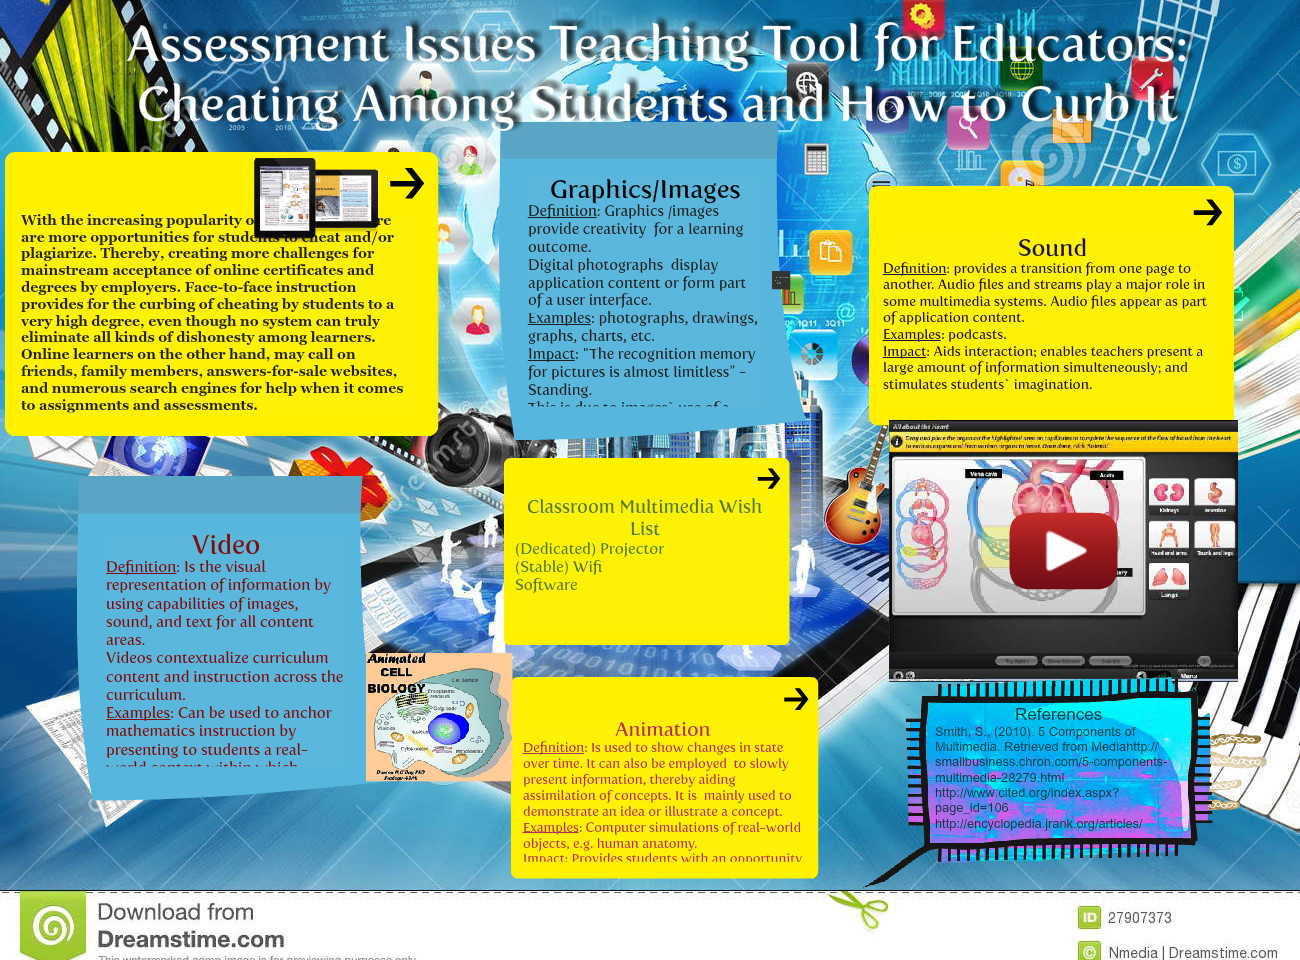 Assessment Issues Teaching Tool for Educators